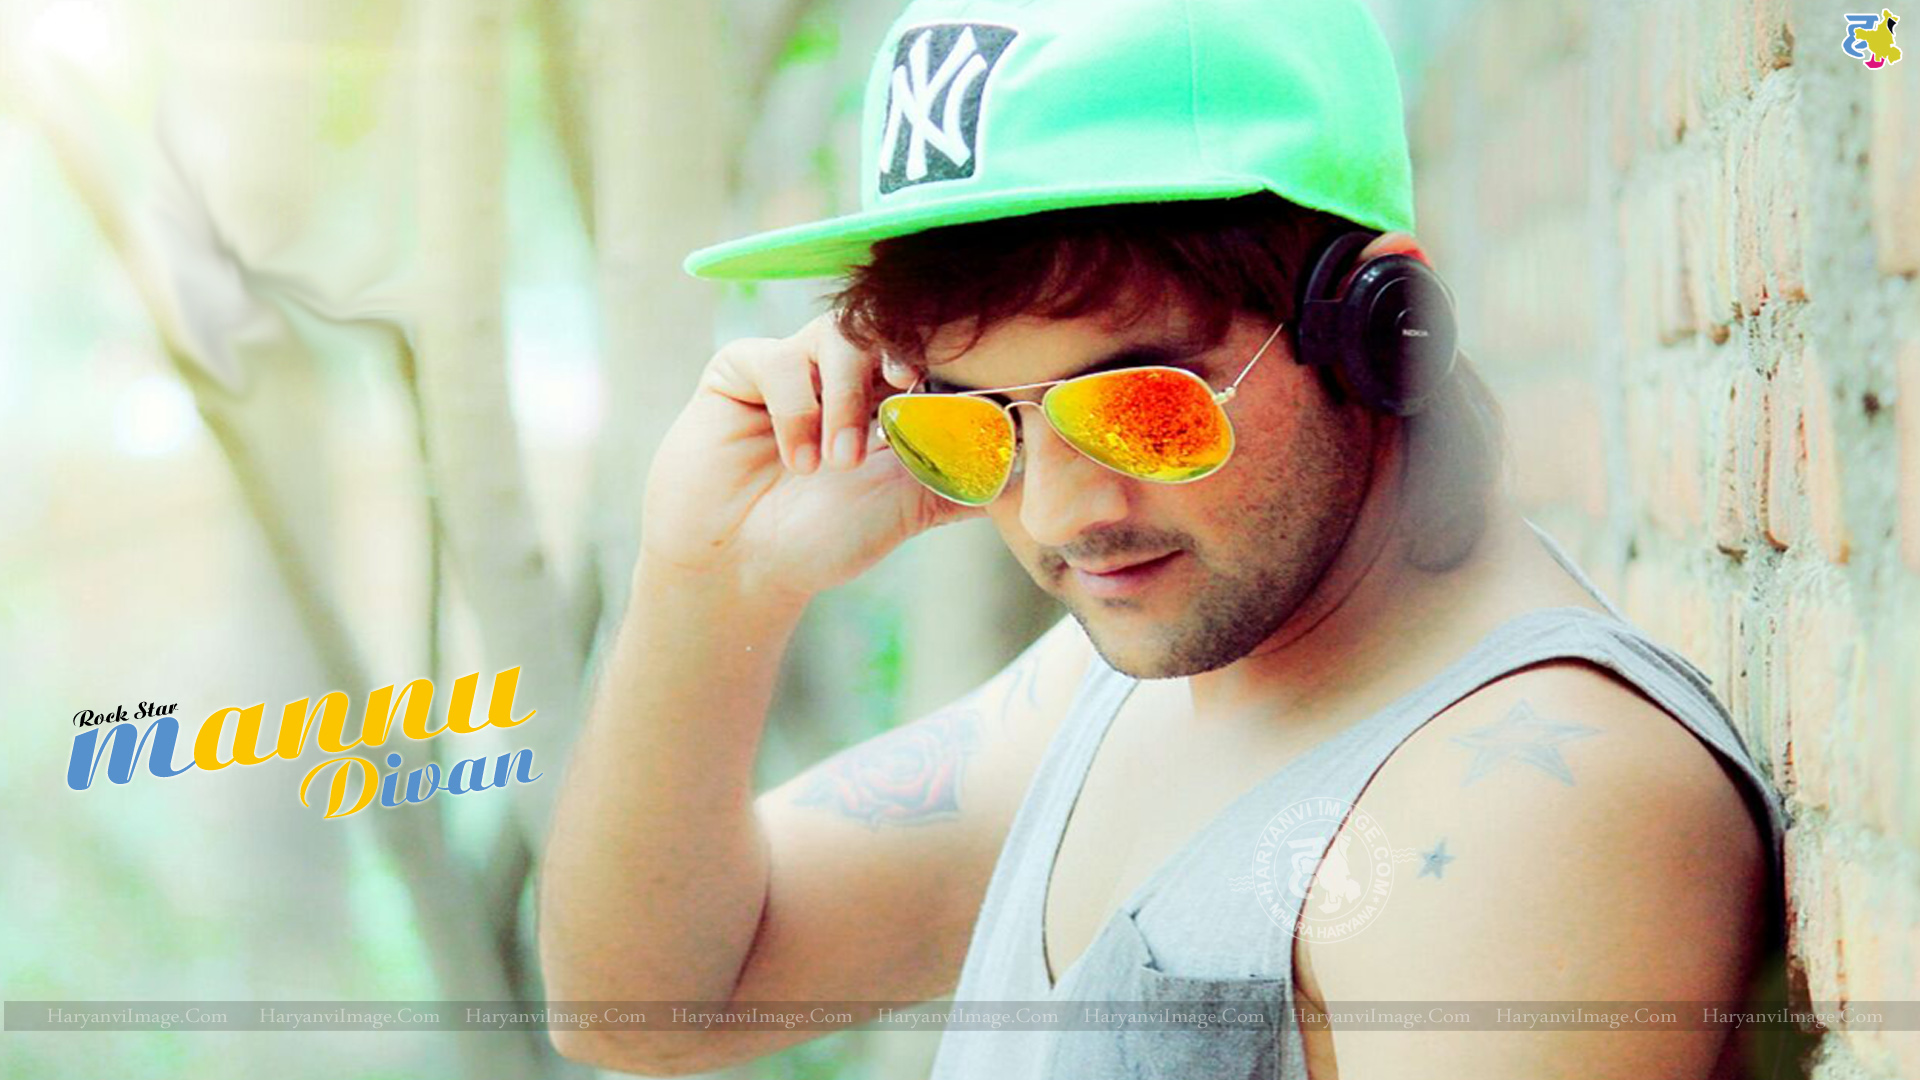 Actor, Haryanvi, HD, Mannu Diwana MD, Rapper, Singer, Wallpaper